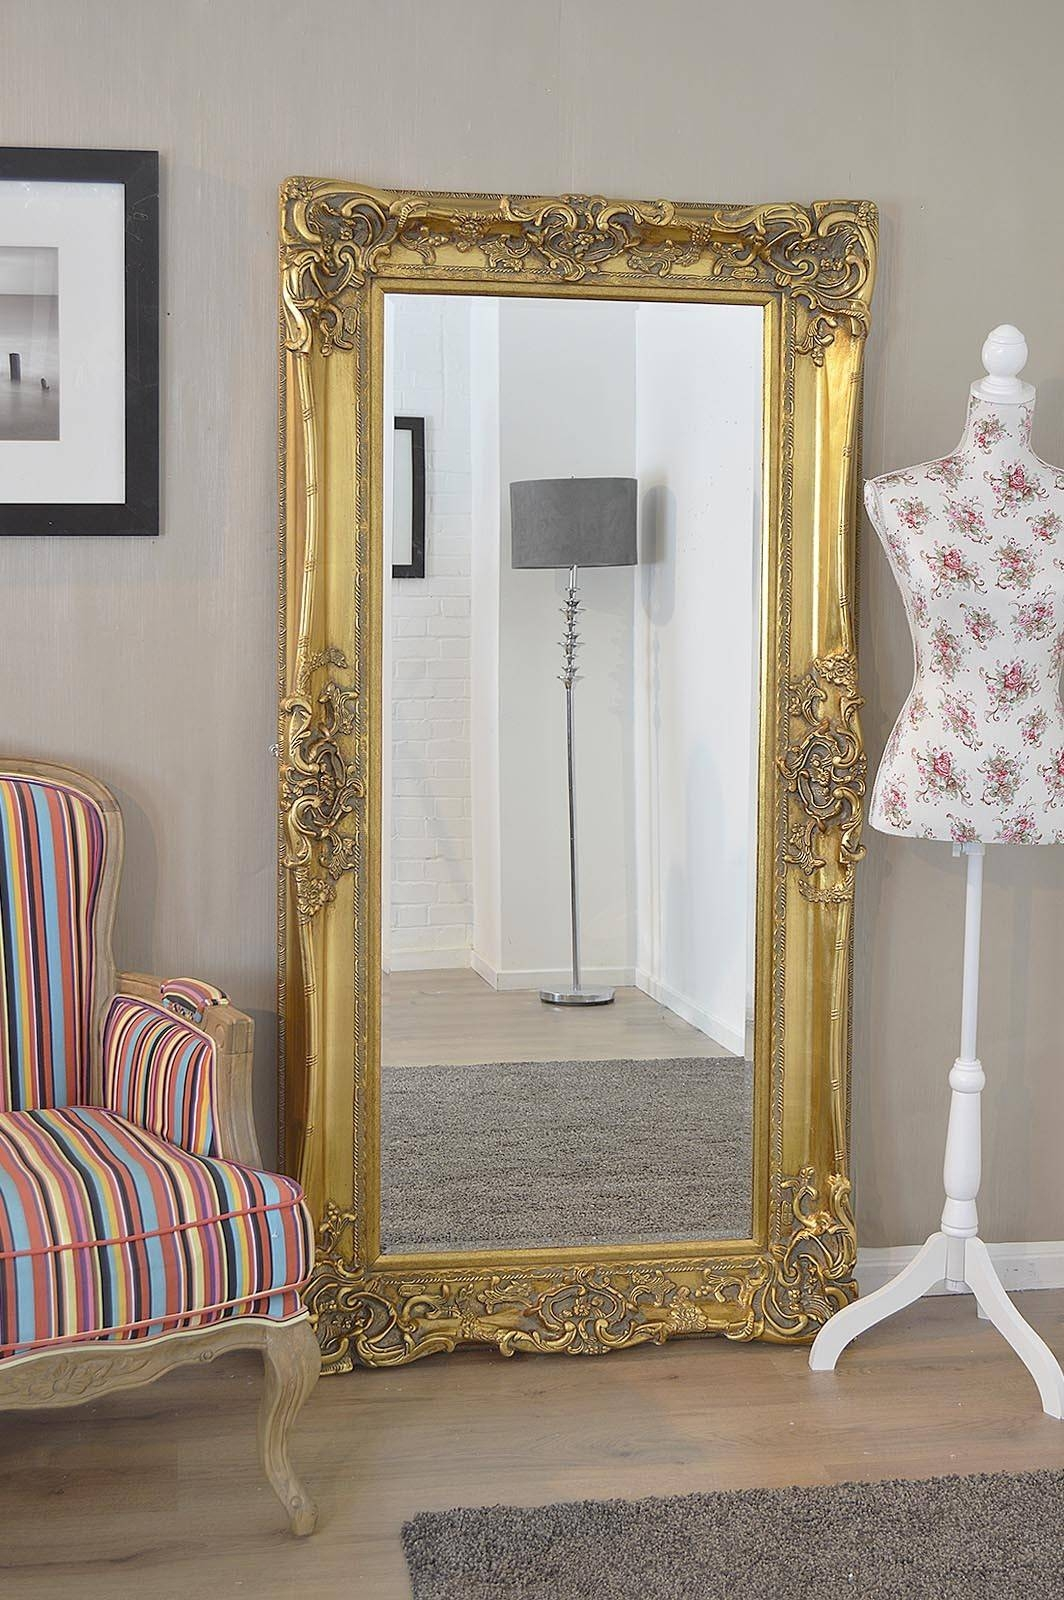 Fabulous Inexpensive Mirrors With Vintage Ornate Mirror Likewise Intended For Antique Ornate Mirrors (View 6 of 25)